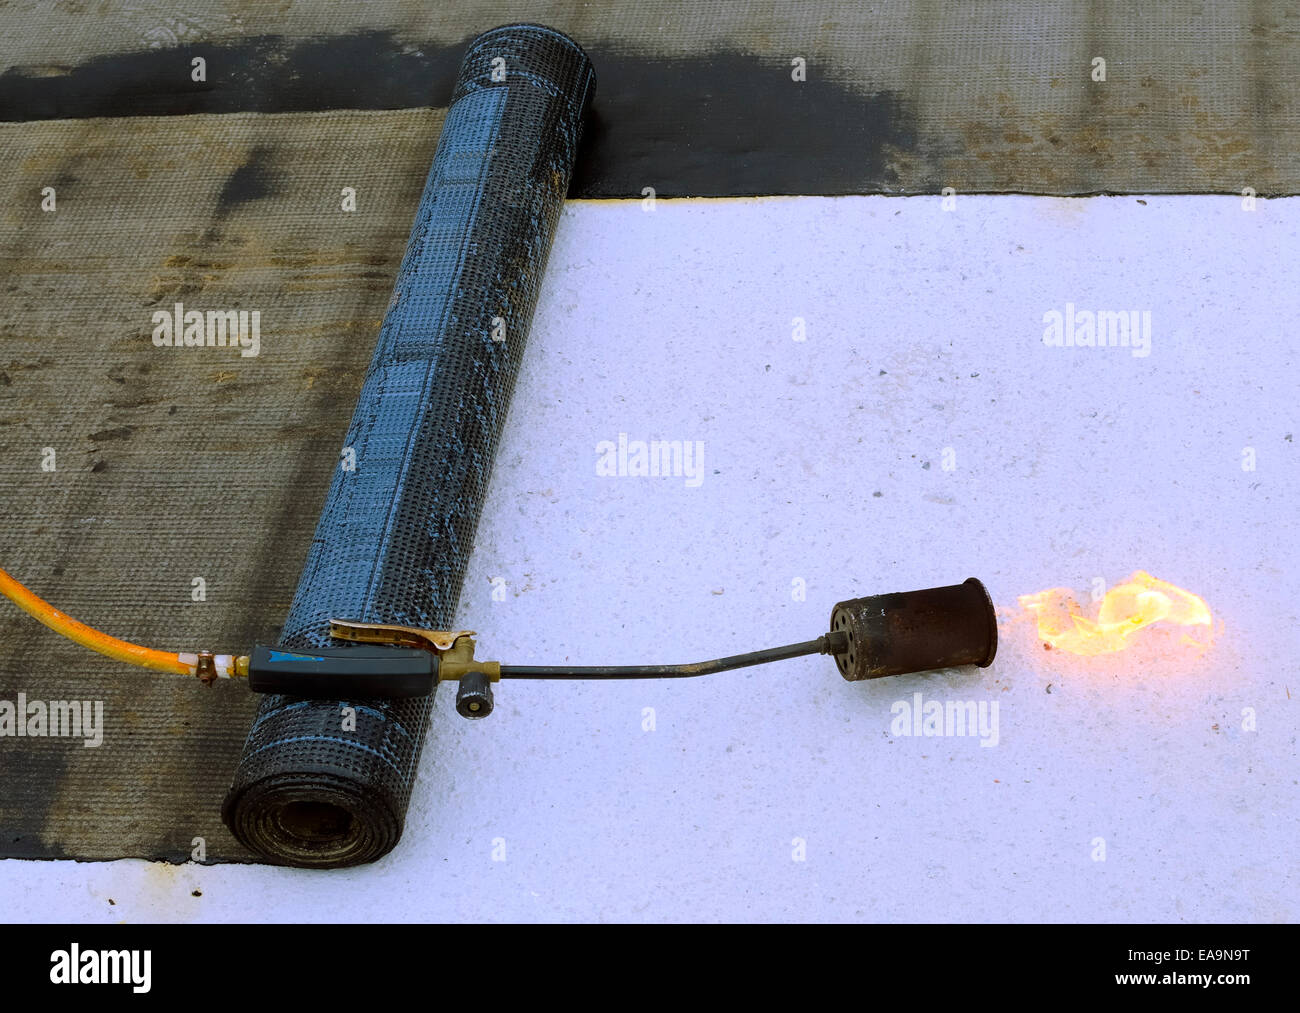 roofing felt roll and one torch blowpipes with open flame - Stock Image